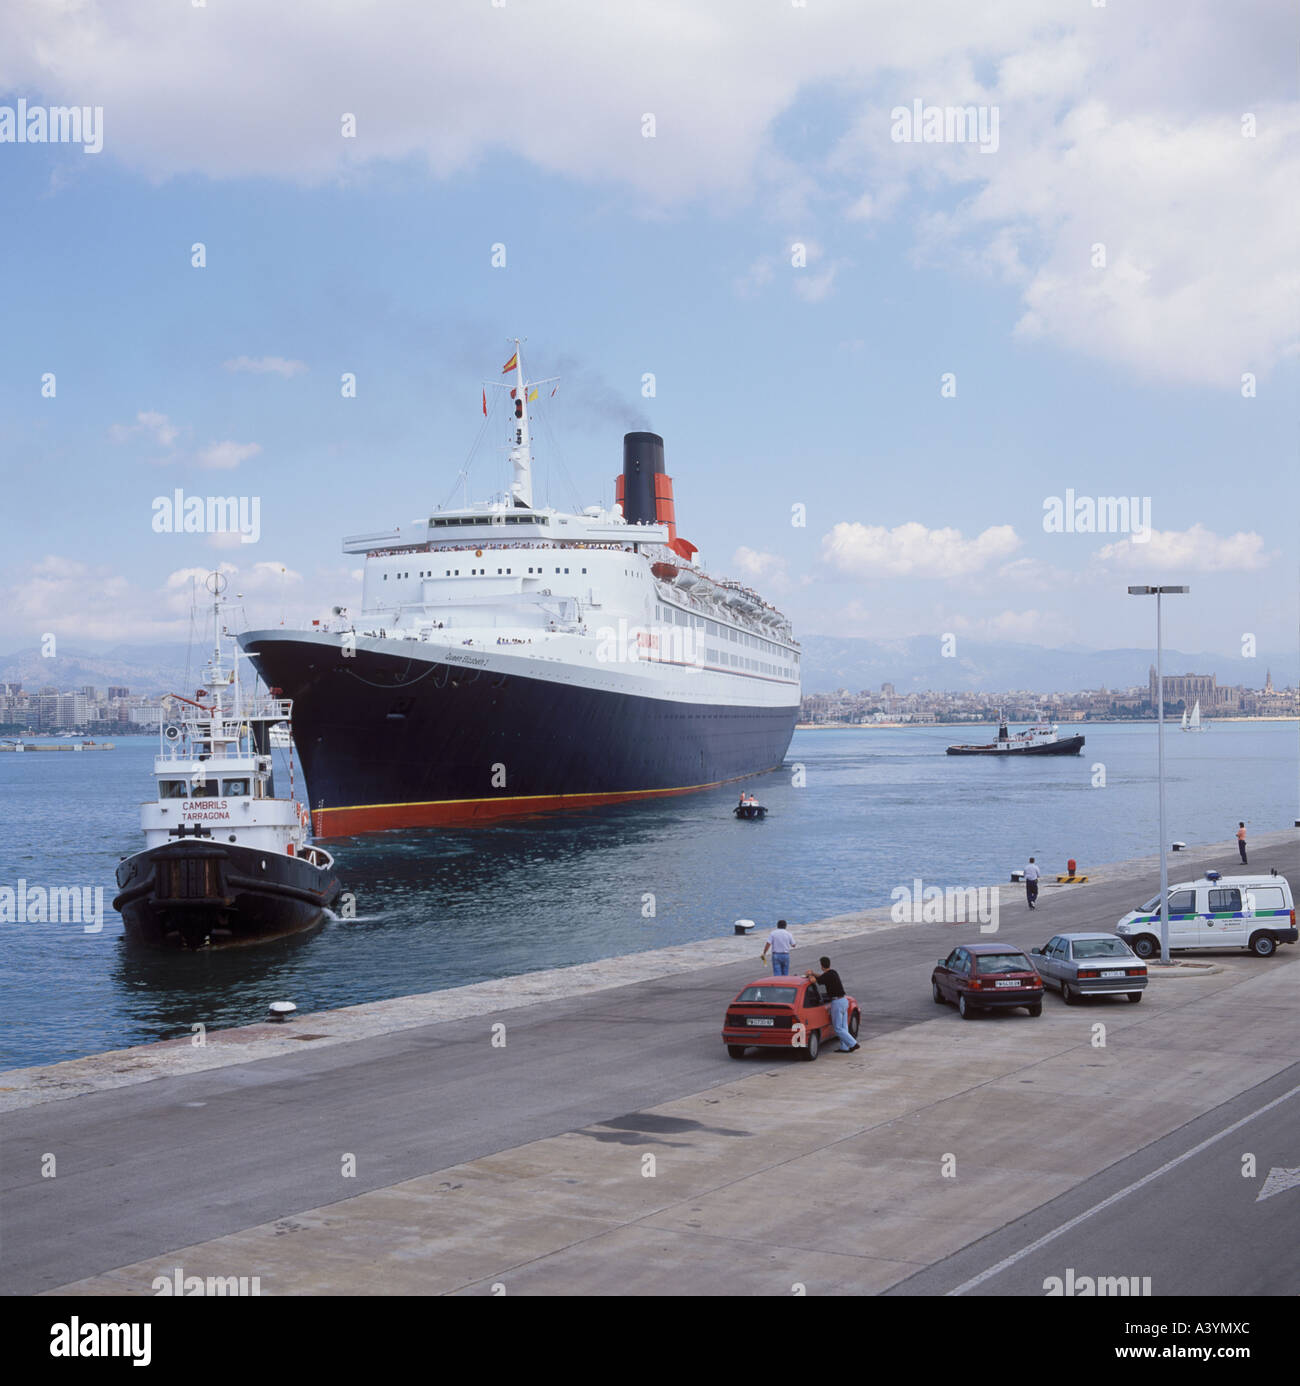 Cunard cruise liner QE2 arriving at Dique del Oeste in the Port of Palma de Mallorca Baleares Spain - Stock Image